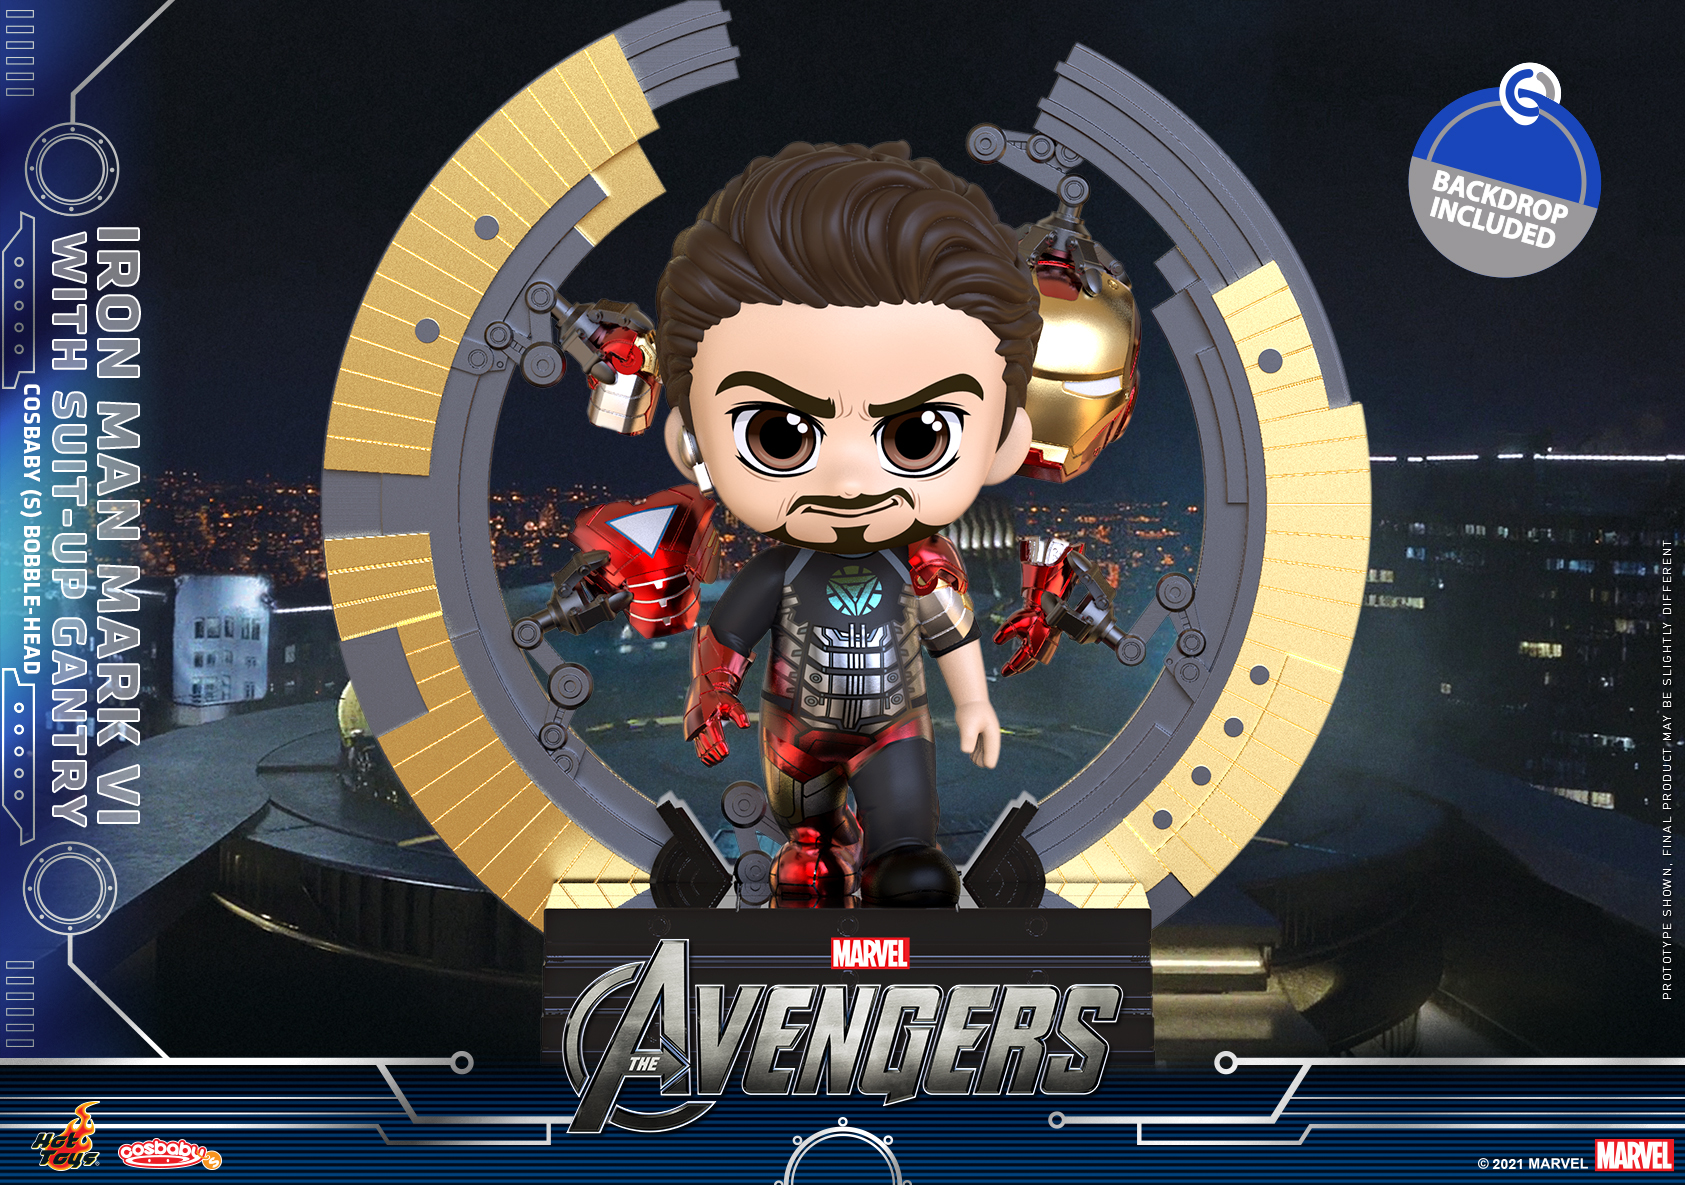 Hot Toys - Avengers - Iron Man Mark VI Gantry with Suit Up Gantry Cosbaby_PR1